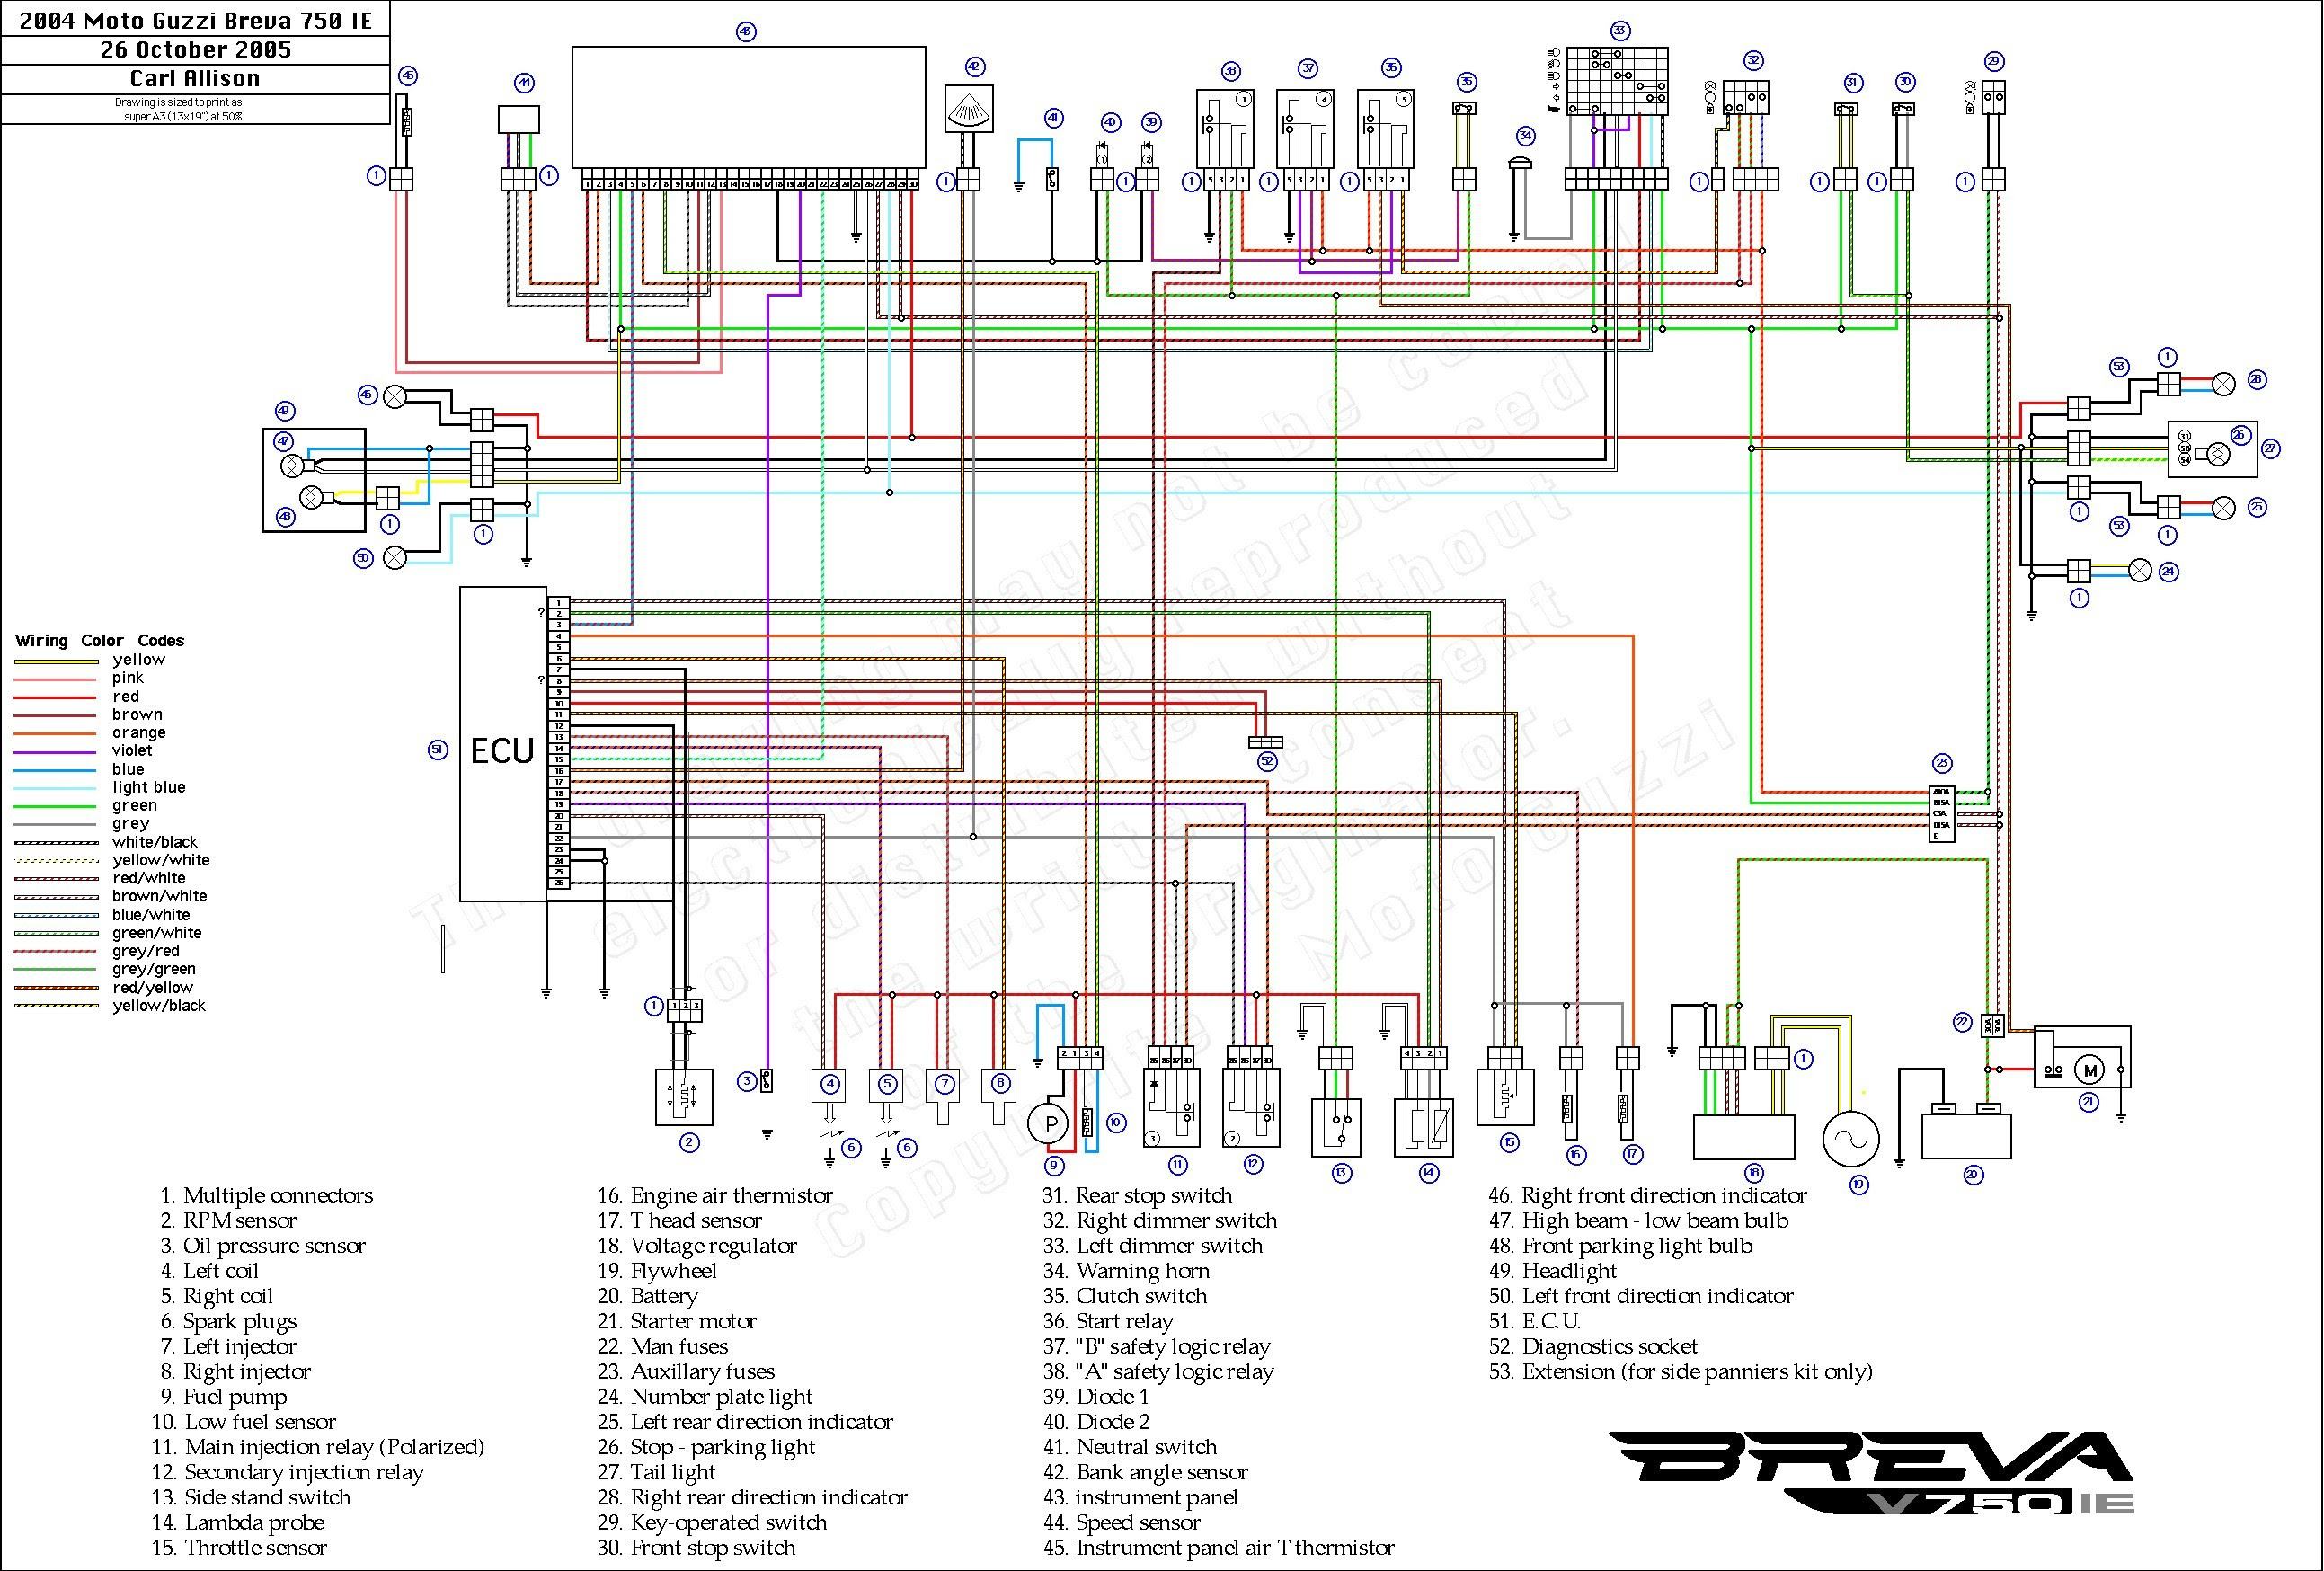 Diagram Dodge Ram 1500 Fog Light Wiring Diagram Full Version Hd Quality Wiring Diagram Pvdiagramxjone Centromacrobioticomilanese It